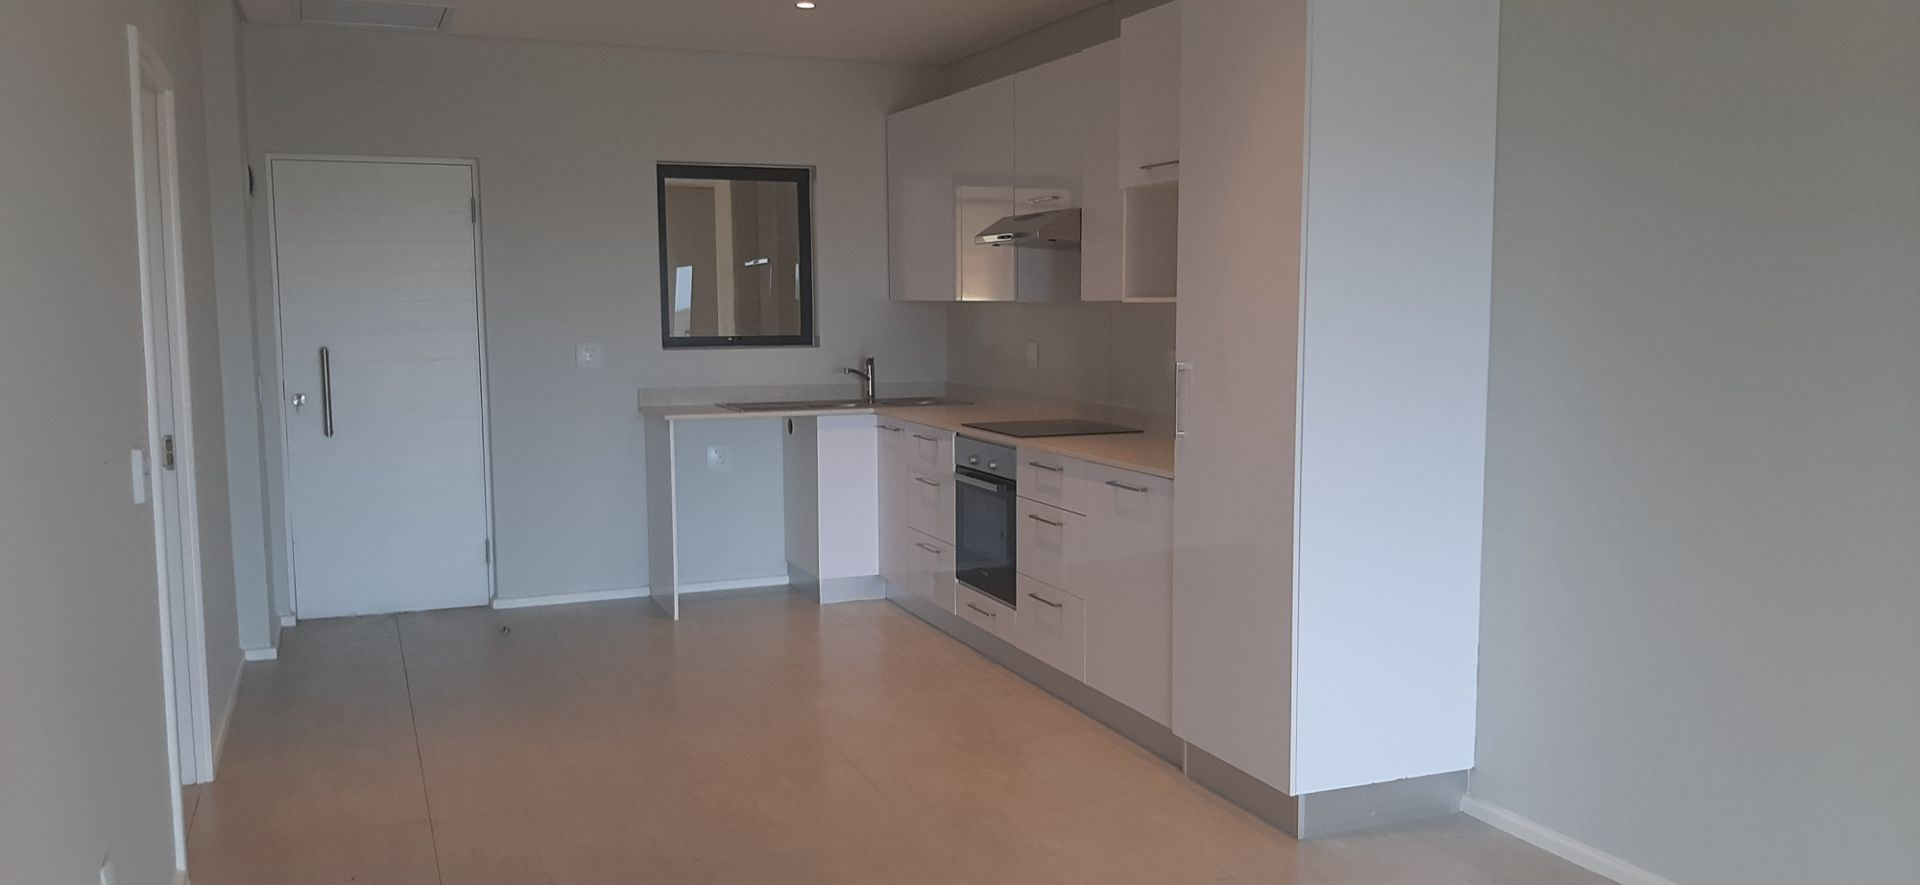 Apartment Rental Monthly in BALLITO